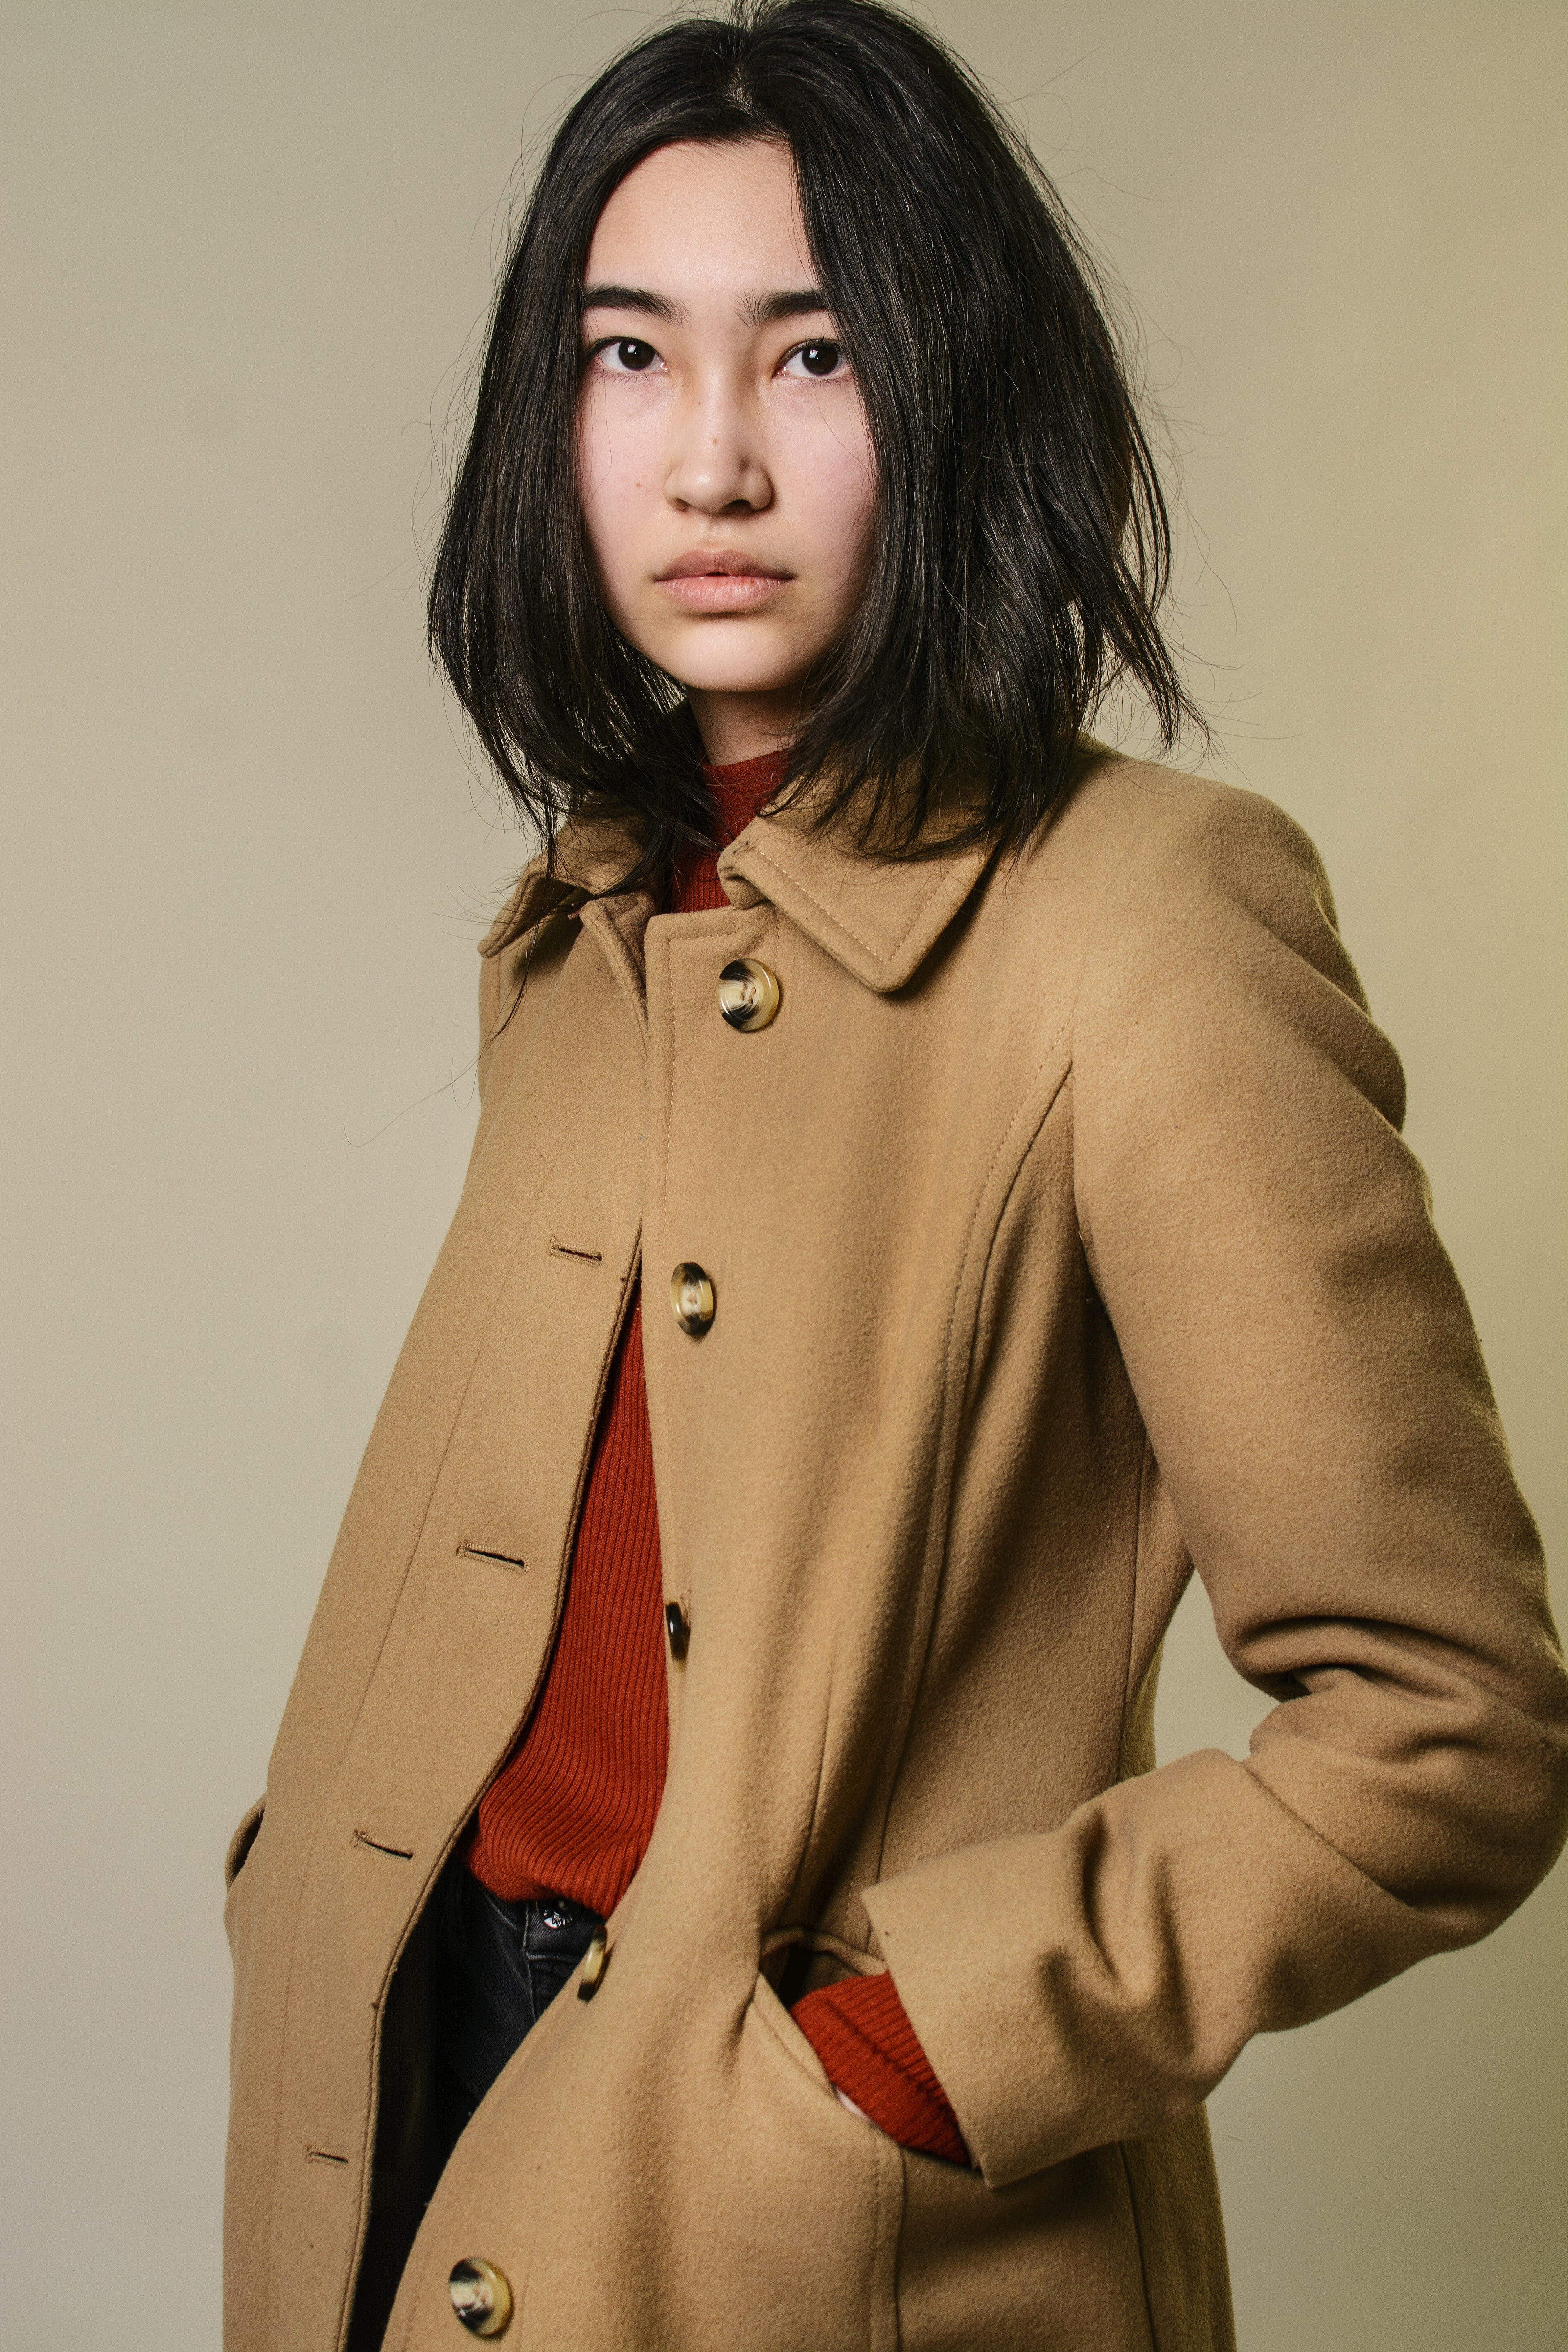 woman wearing brown button-up coat